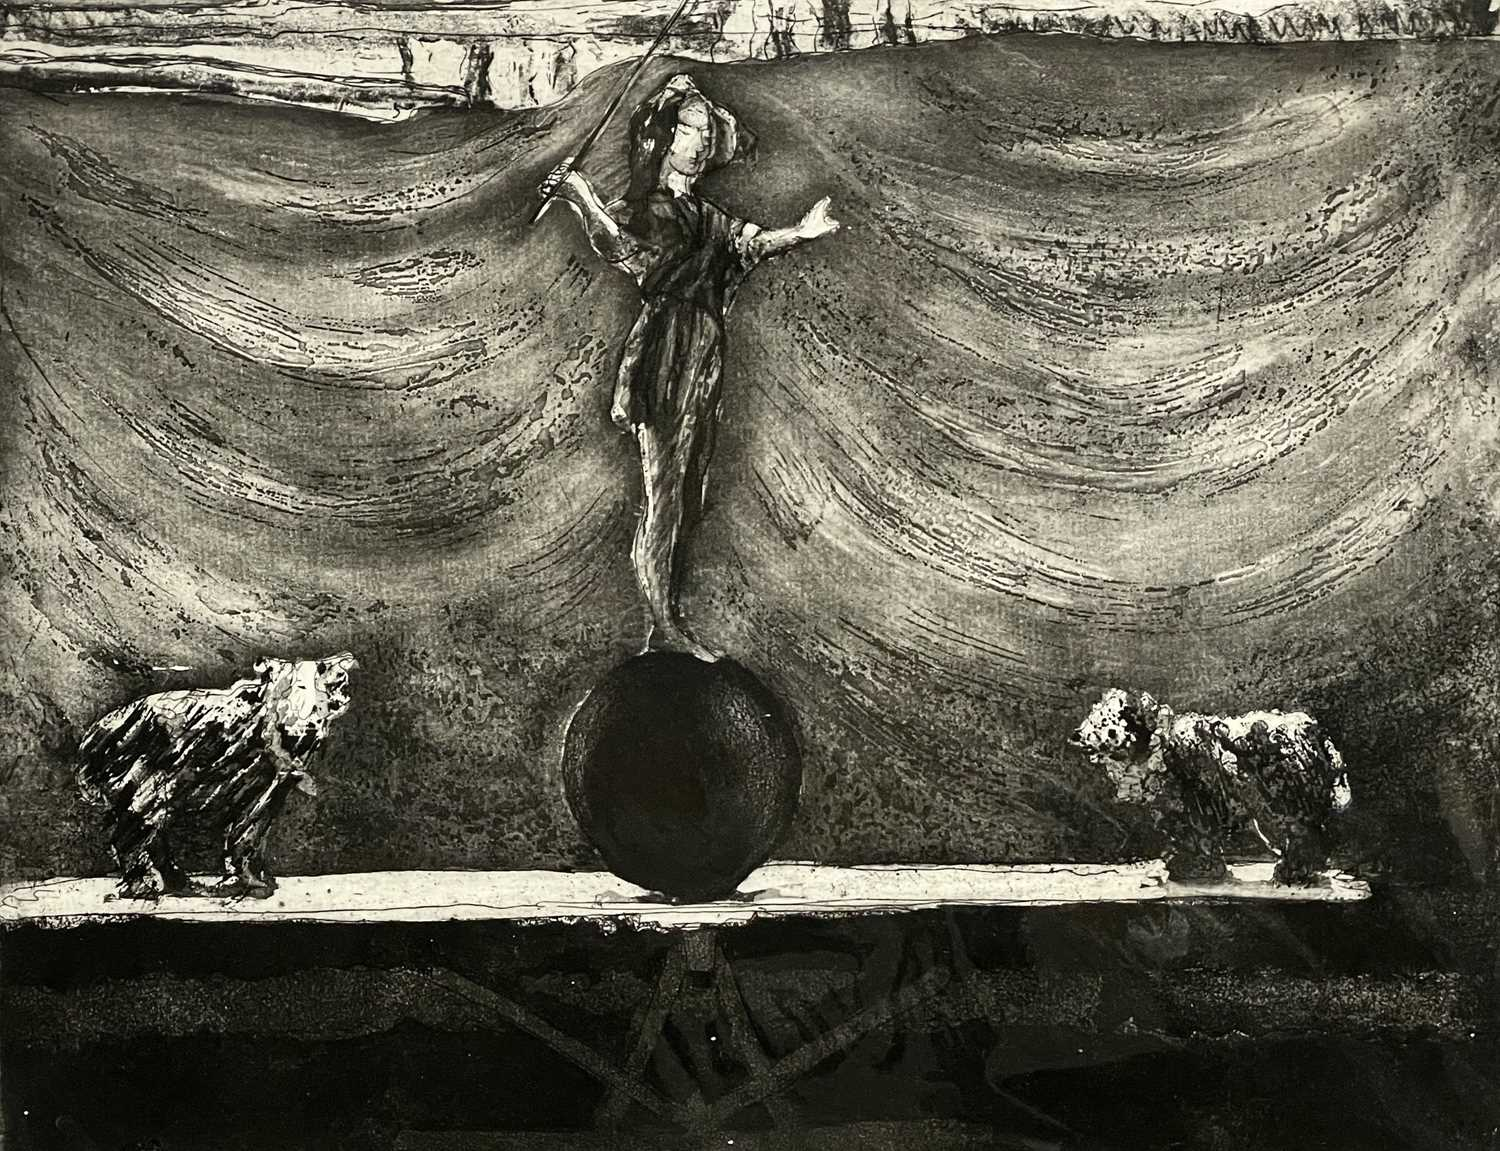 HEADLEY Cornish Mystery VIColoured etching Signed and inscribed 17.5 x 18cmTogether with ' - Image 8 of 9